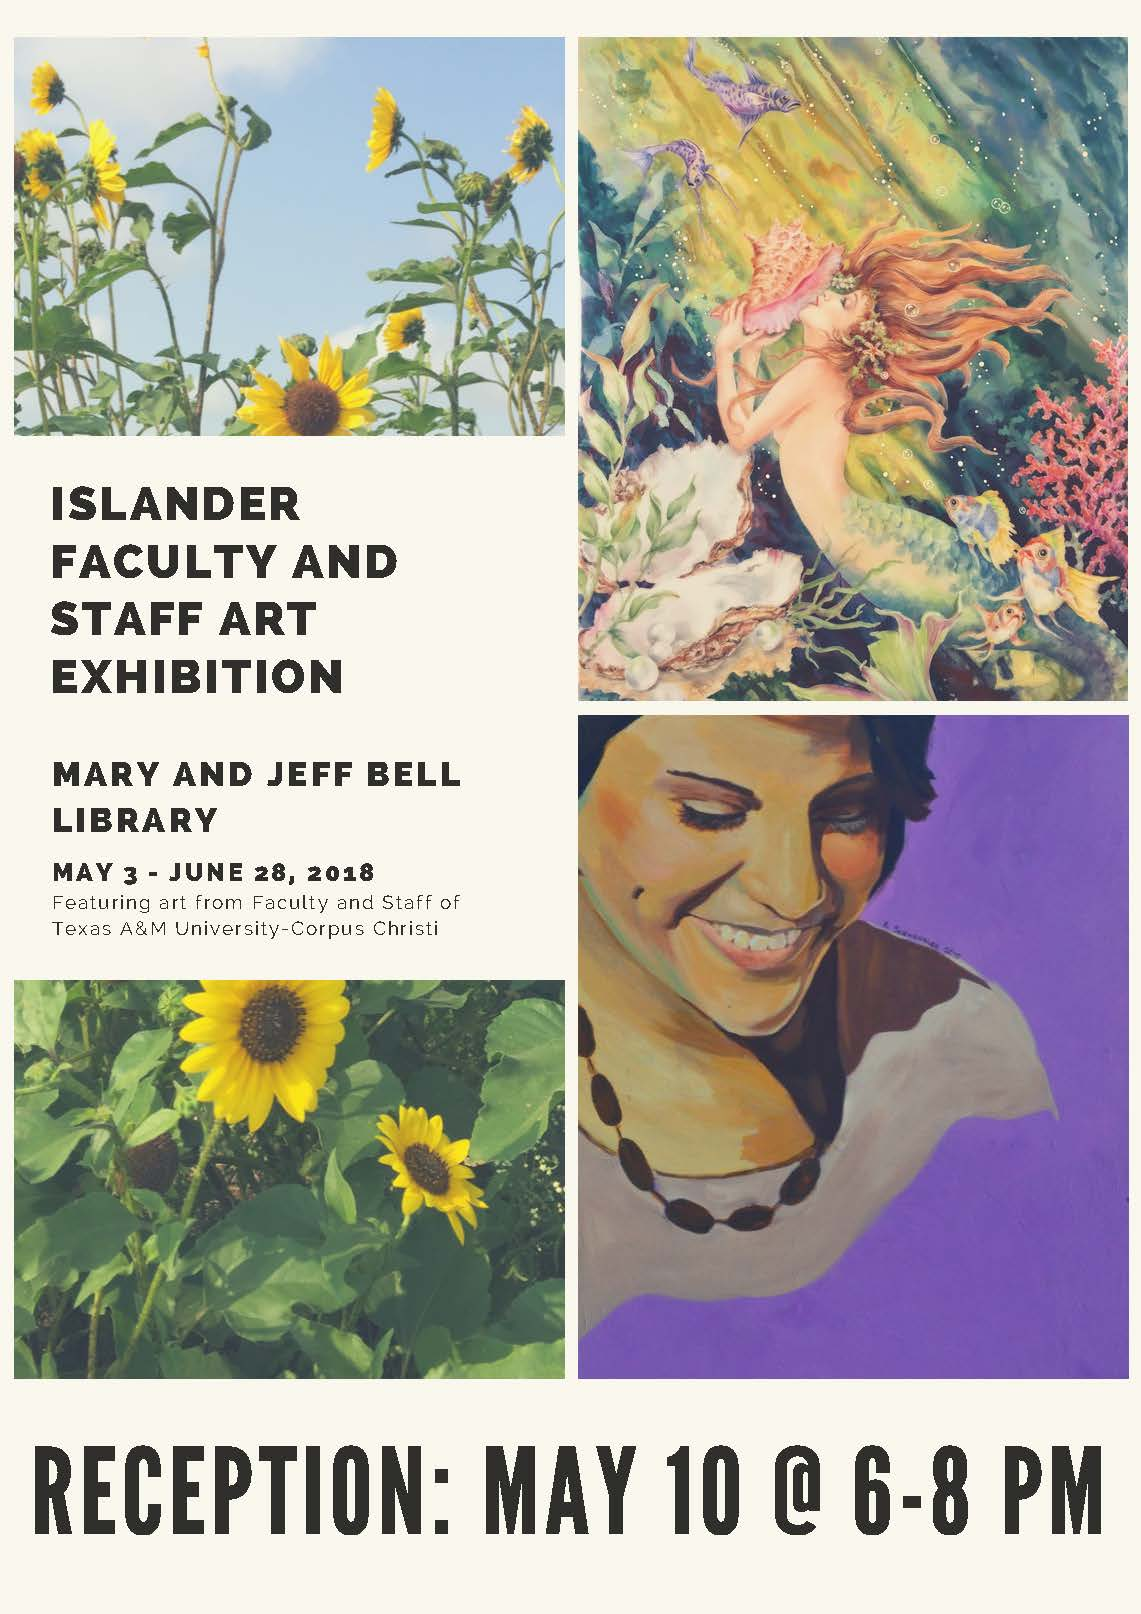 May 3rd - June 28th: Islander Faculty and Staff Art Exhibition